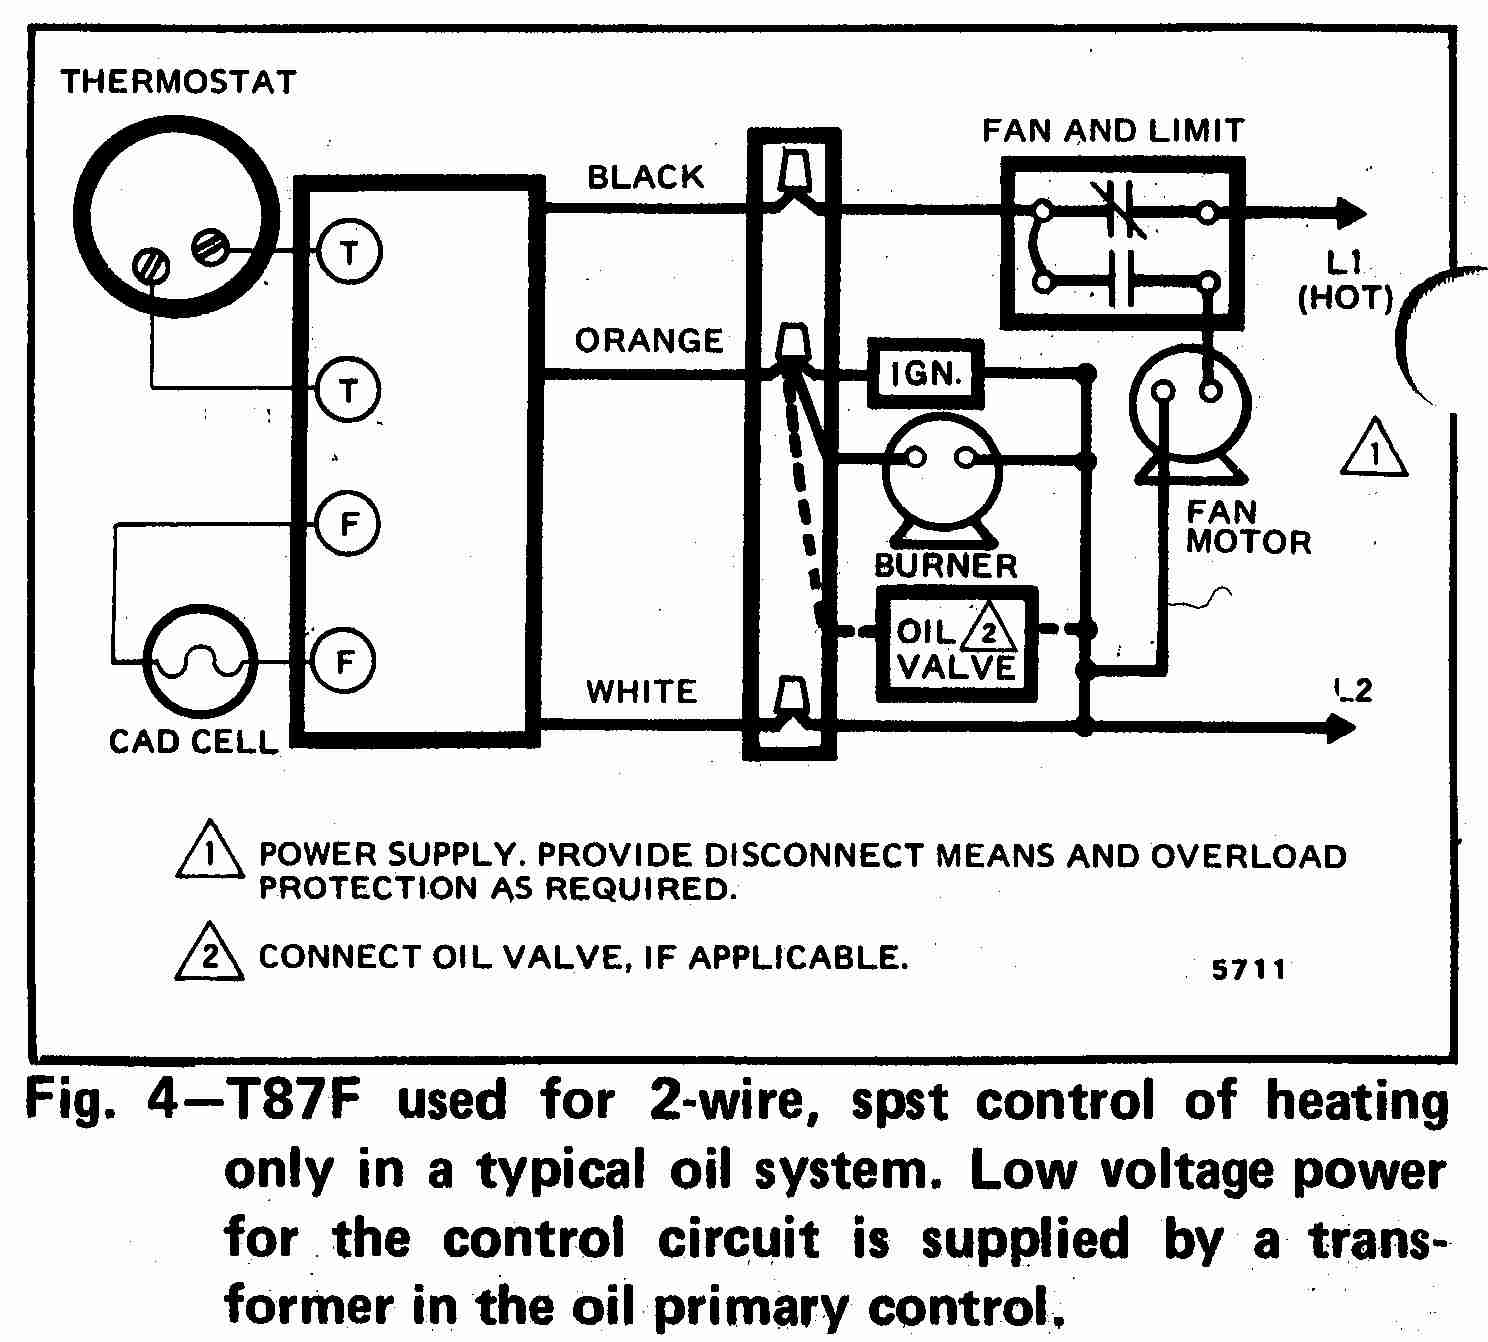 TT_T87F_0002_2W_DJF room thermostat wiring diagrams for hvac systems honeywell gas valve wiring diagram at cos-gaming.co